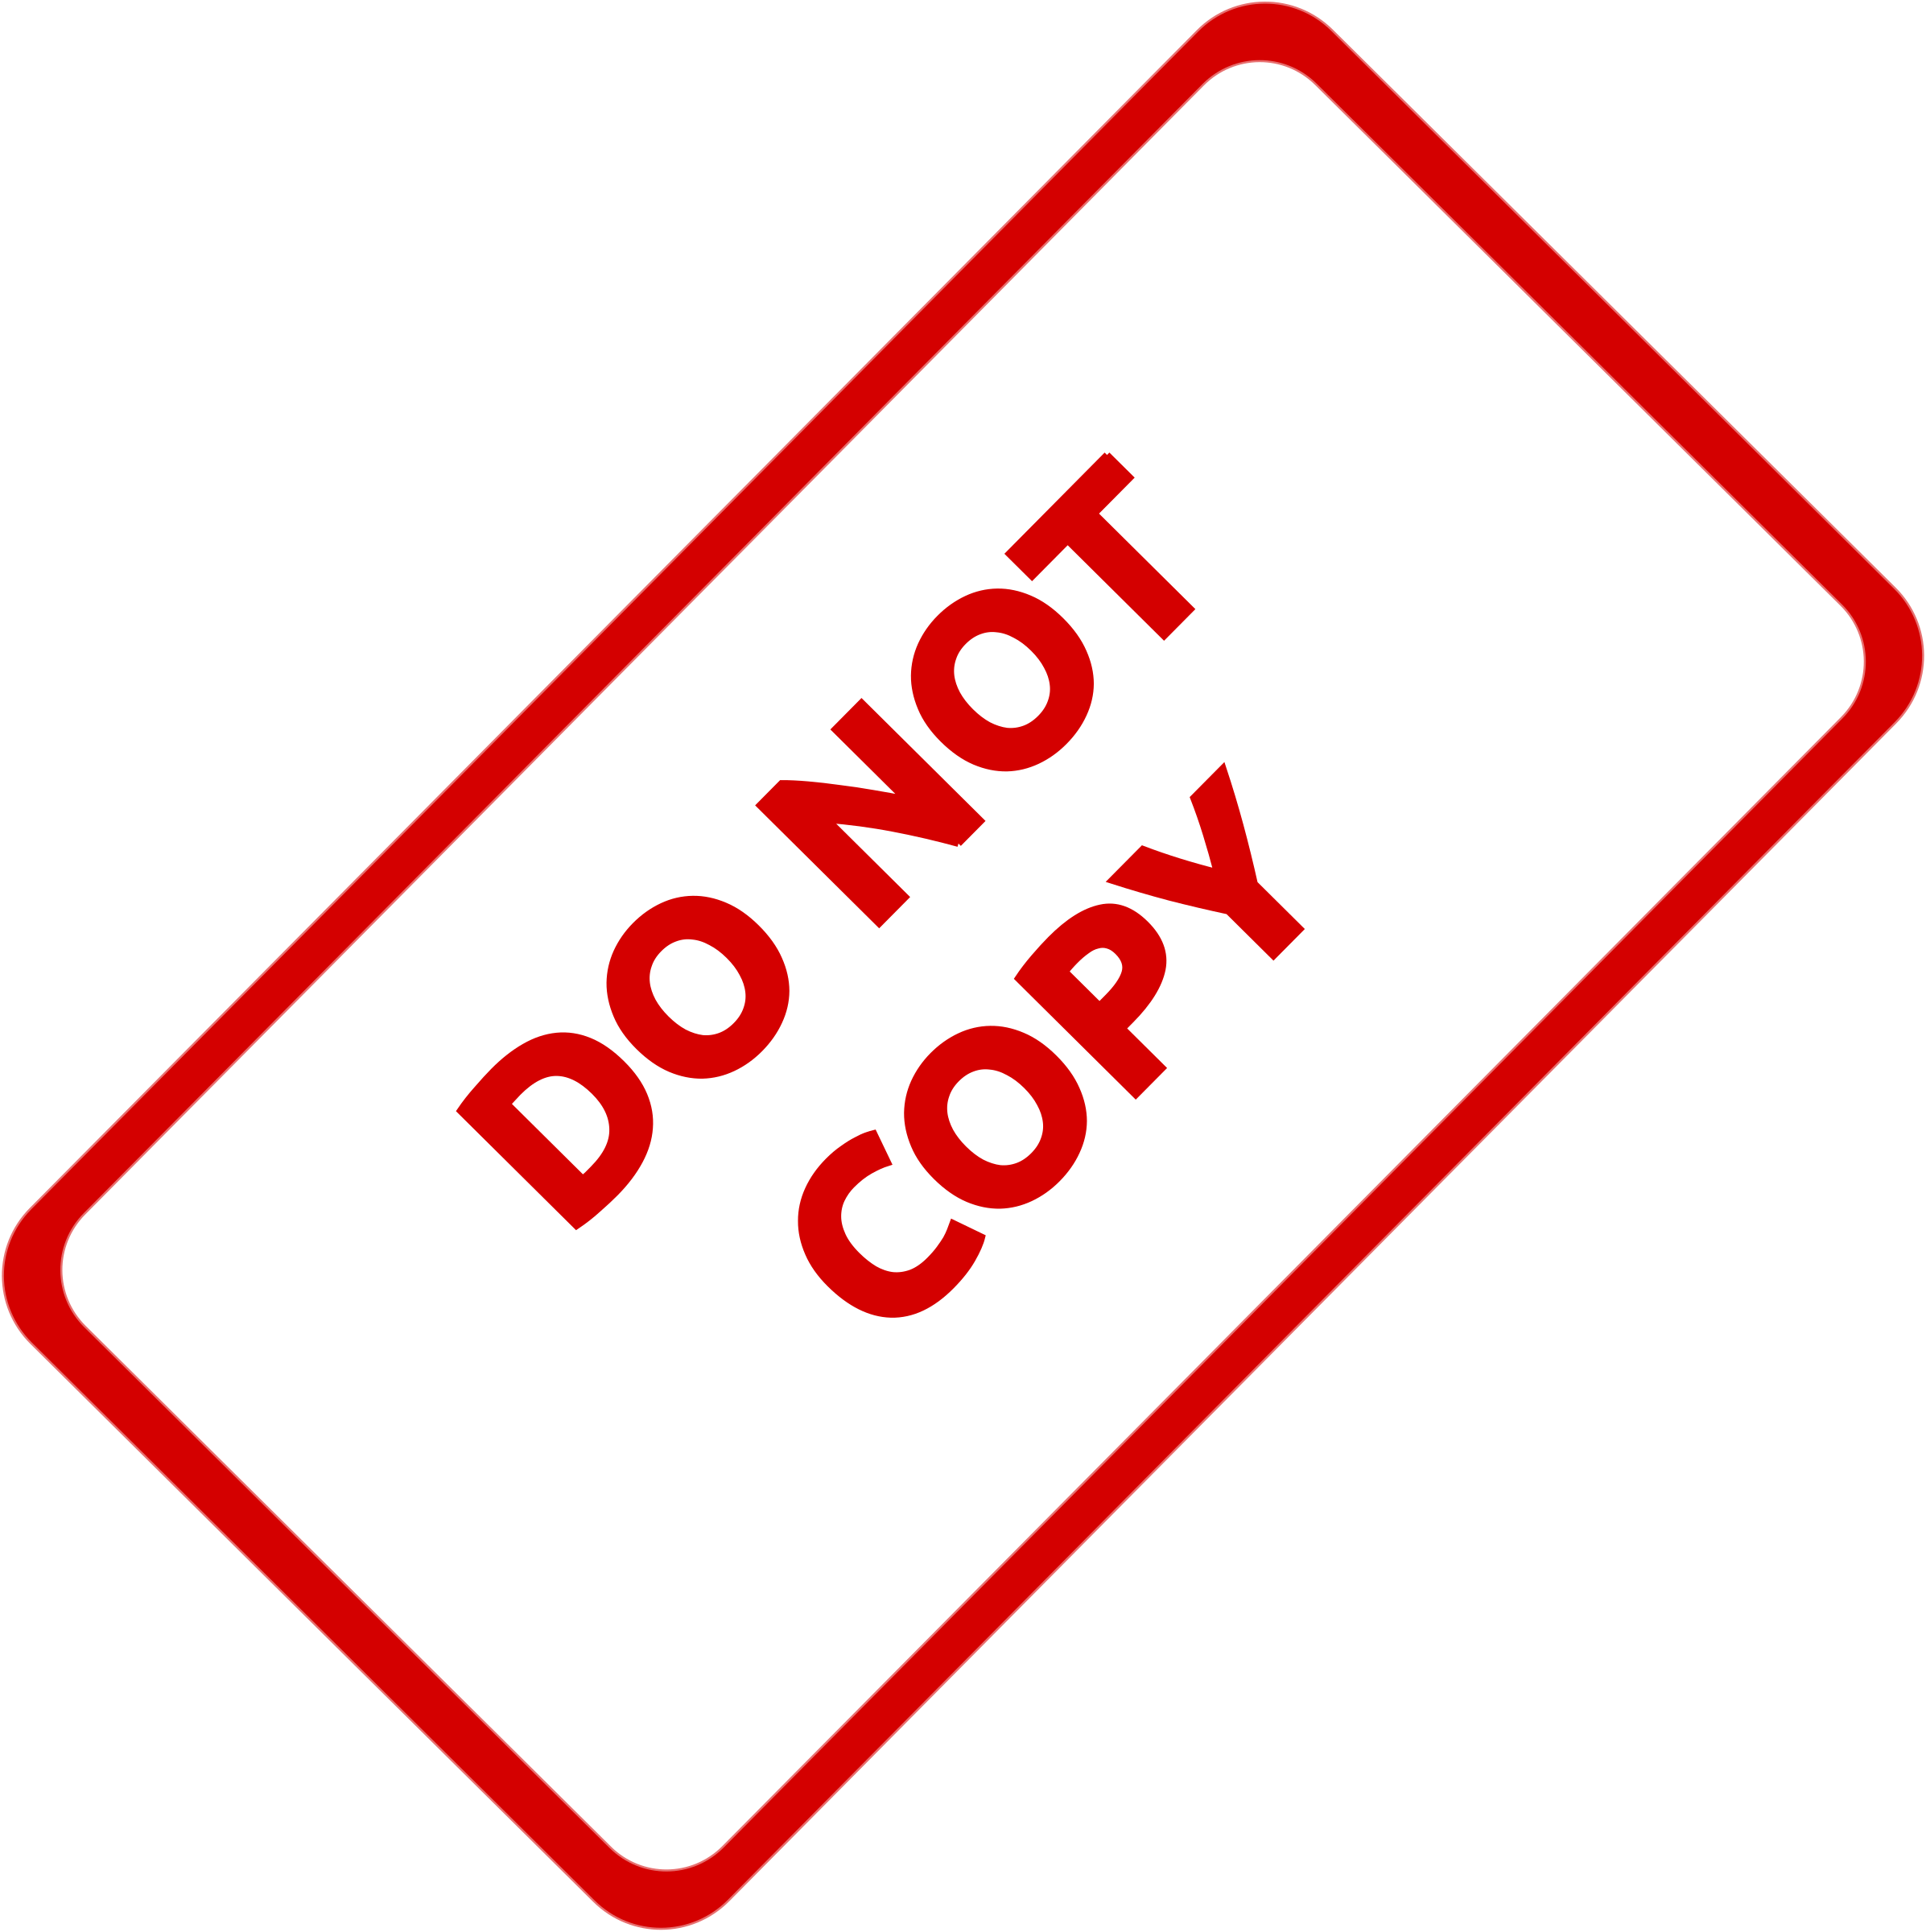 No stamp png. Clipart do not copy